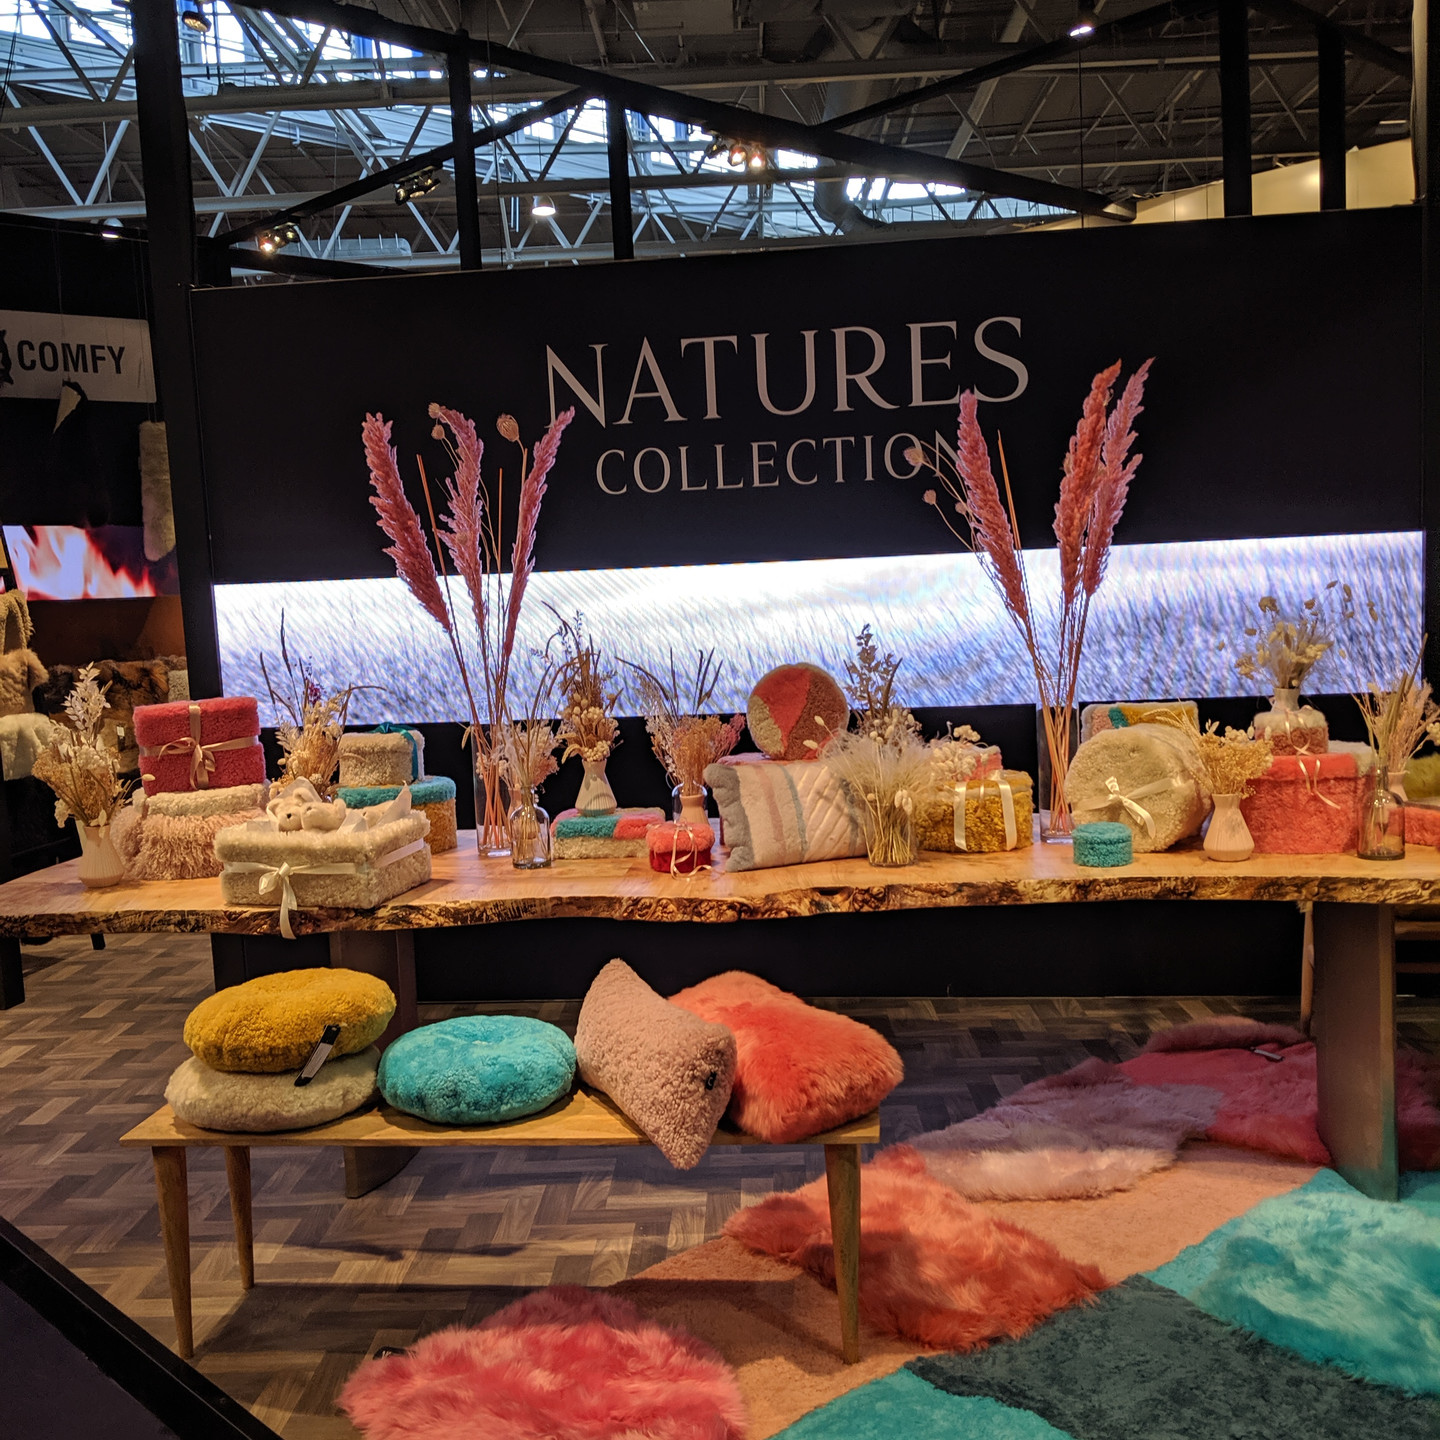 Brightly Colored Display of Faux Fur Throw Pillows and Housewares